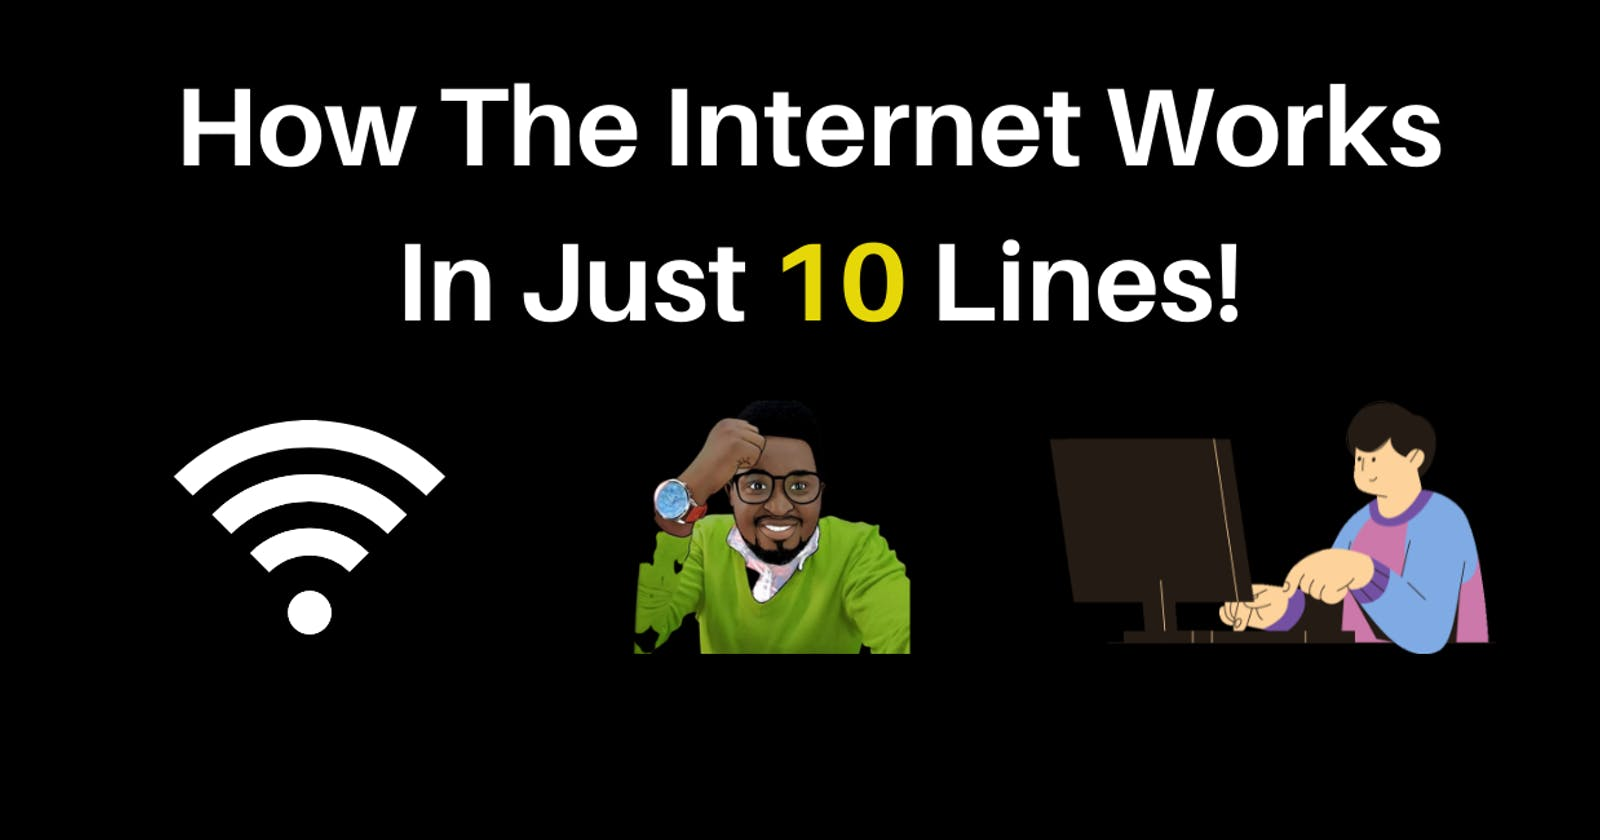 How The Internet Works In Just 10 Lines!